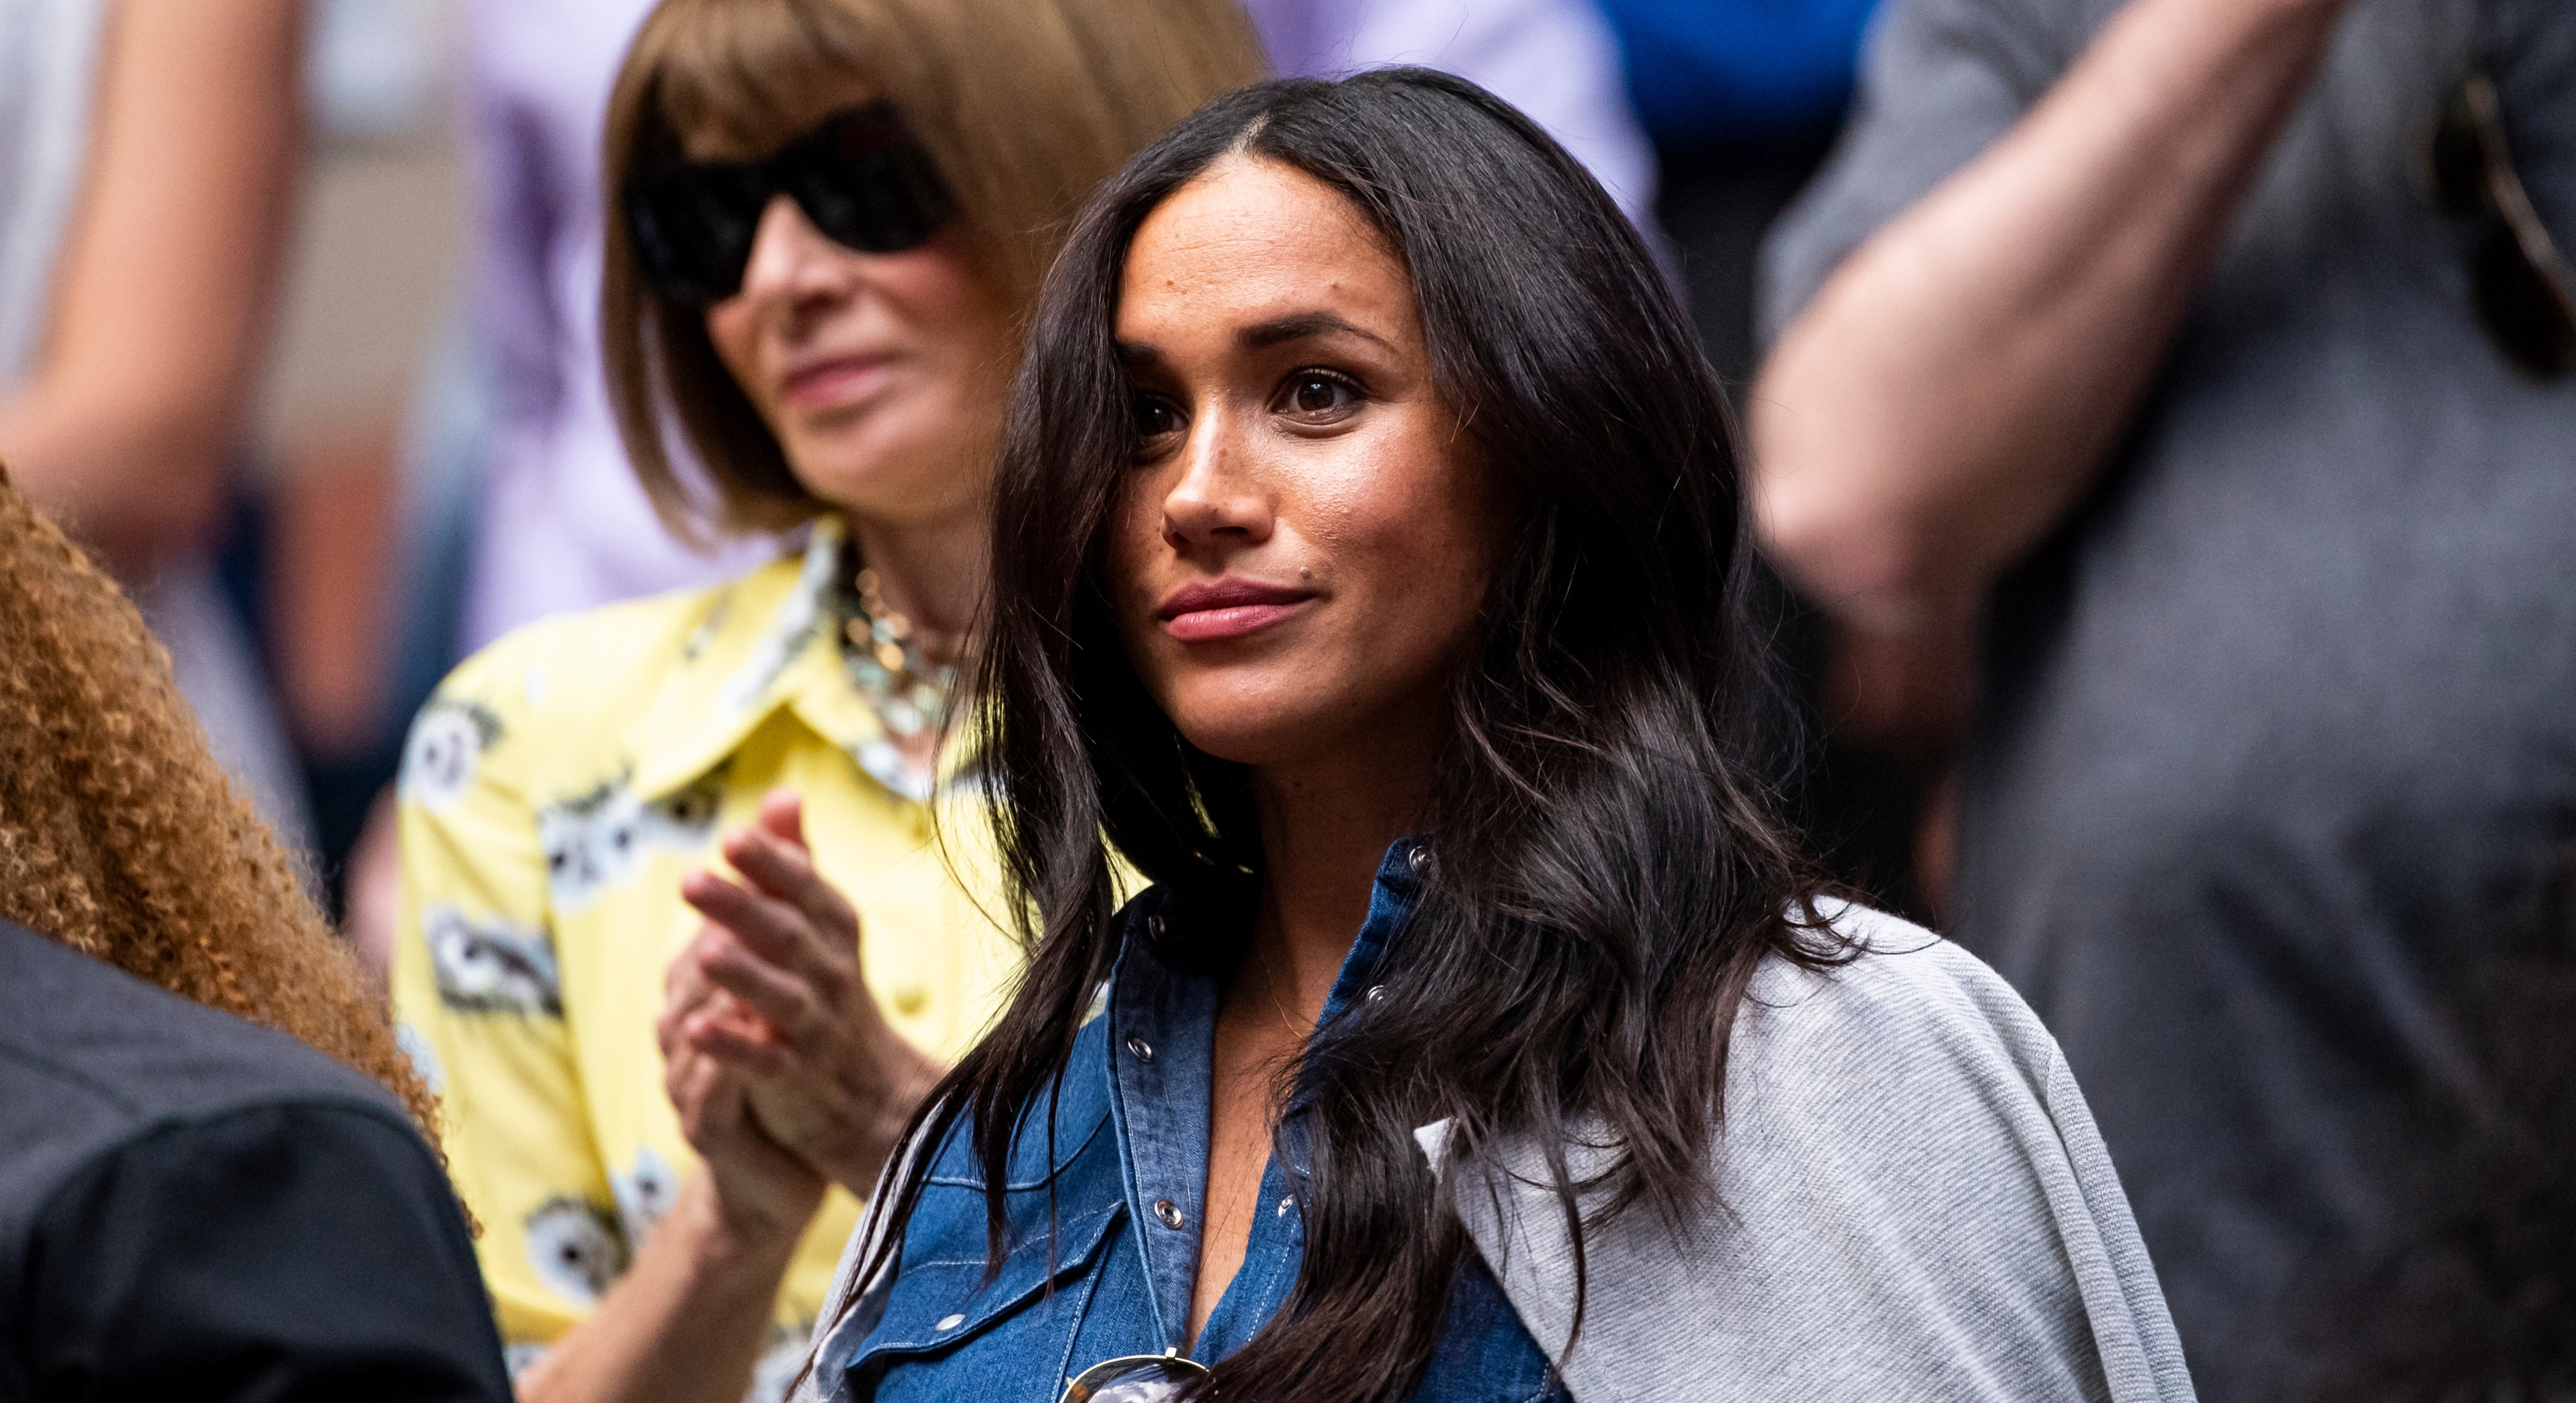 Meghan Markle attended a yoga class in New York ahead of watching Serena Williams at the US Open [Image: Getty]